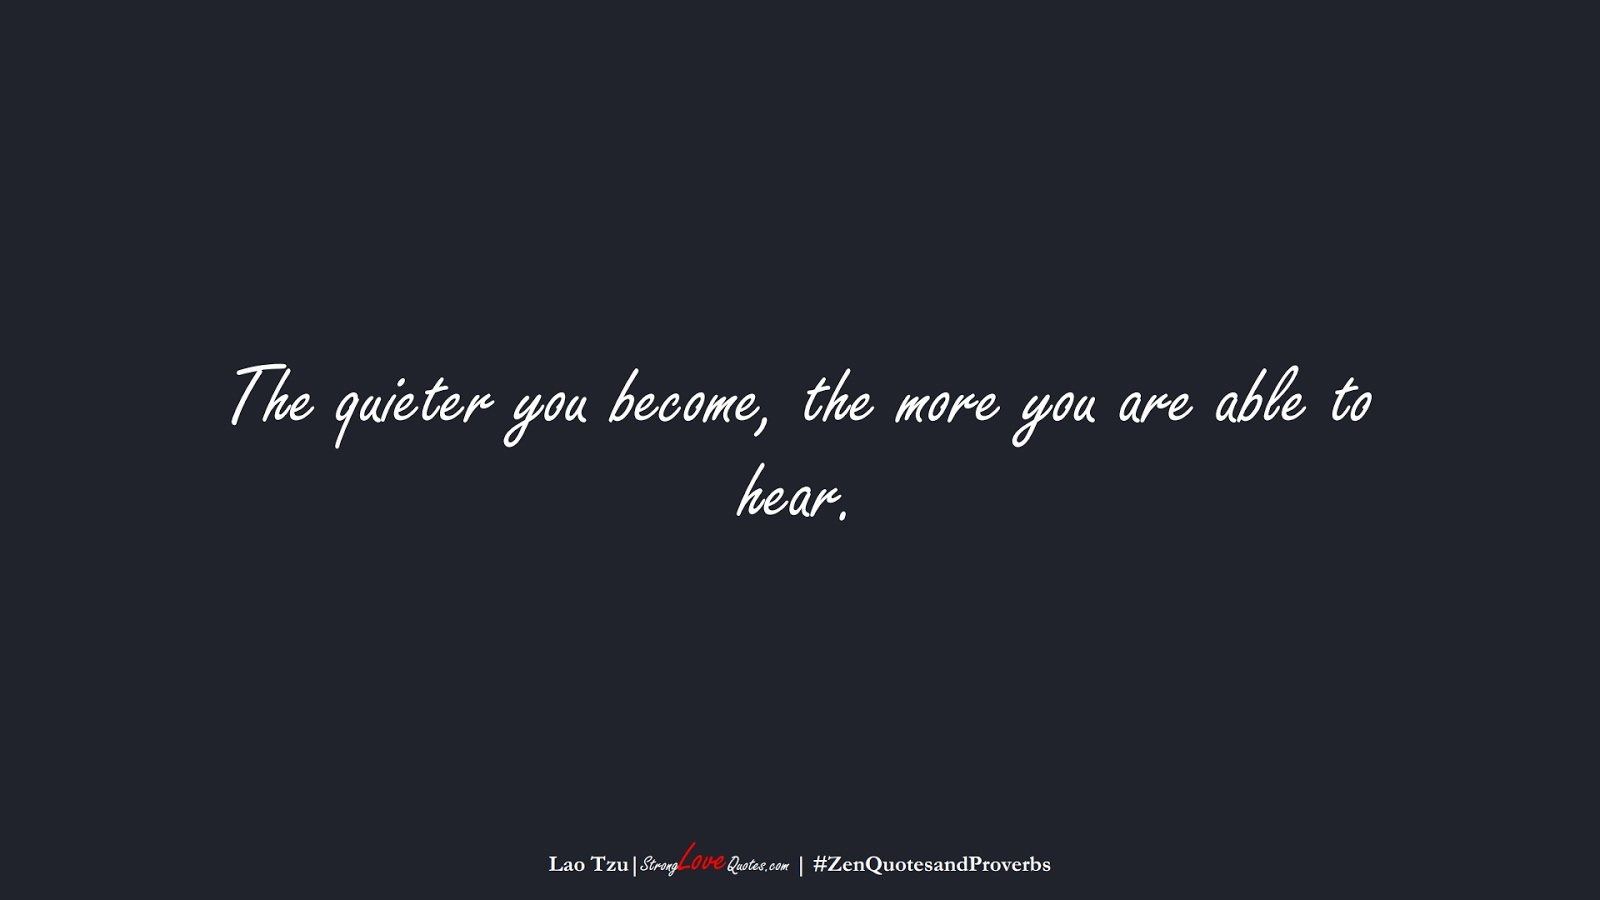 The quieter you become, the more you are able to hear. (Lao Tzu);  #ZenQuotesandProverbs